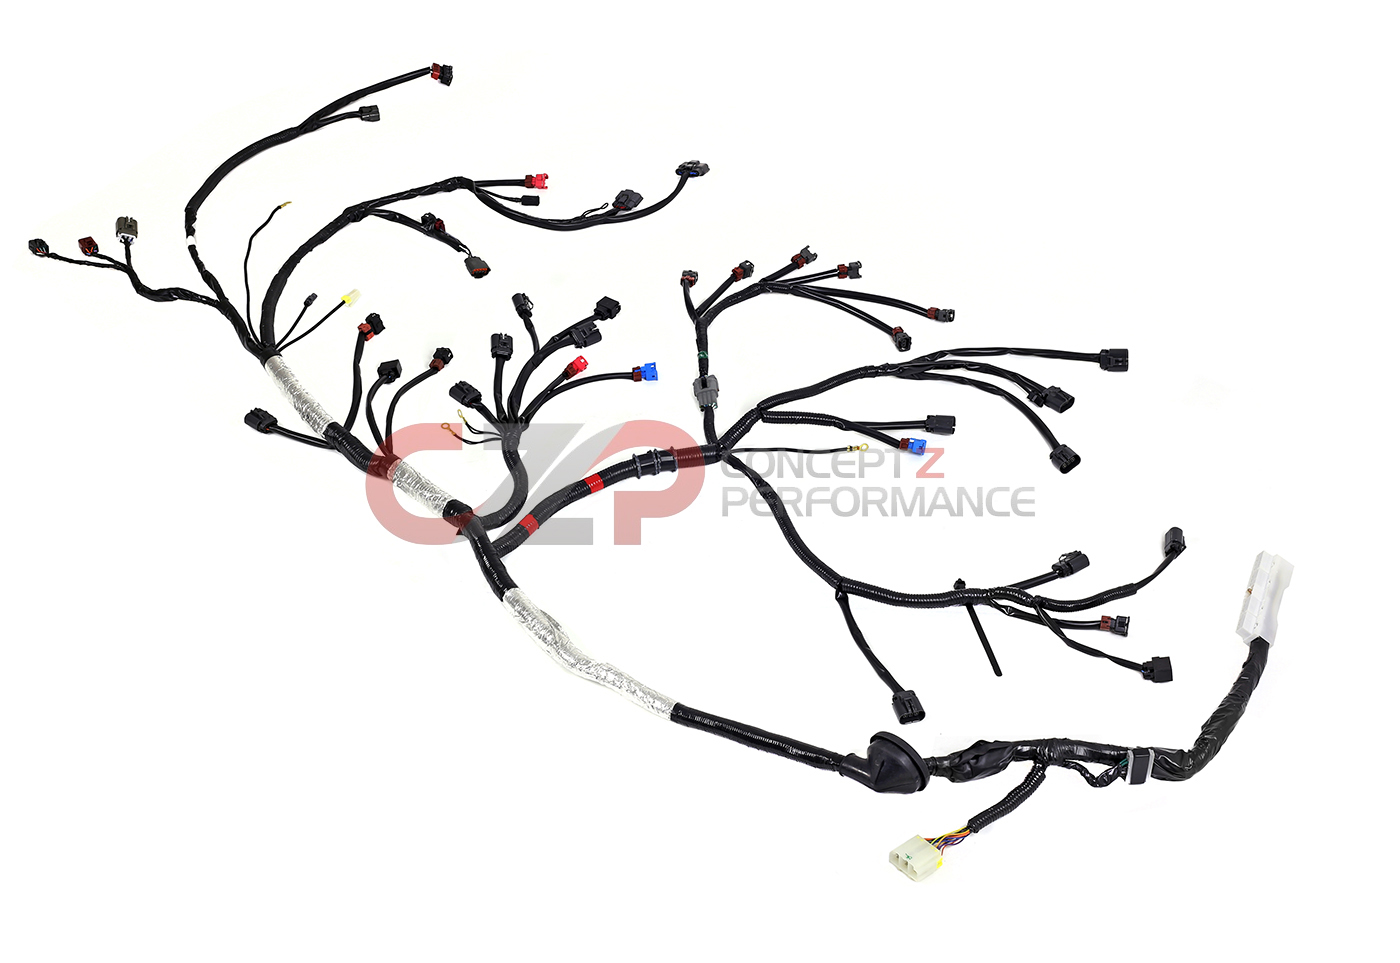 Z31 300zx Wiring Harness | Wiring Diagram